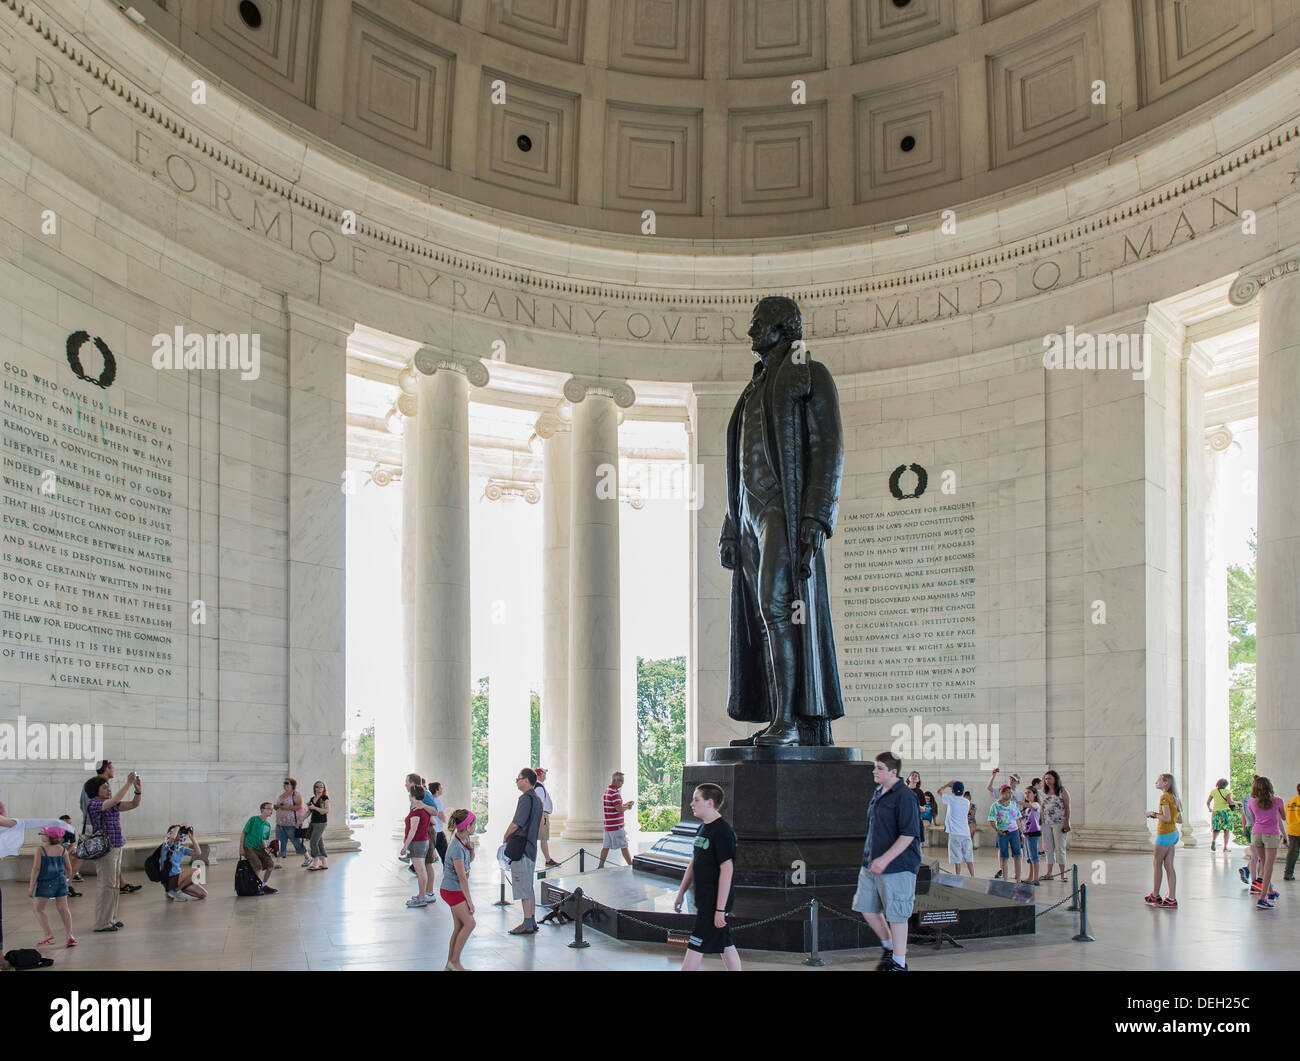 Interieur, Jefferson Memorial, Washington DC, USA Stockbild